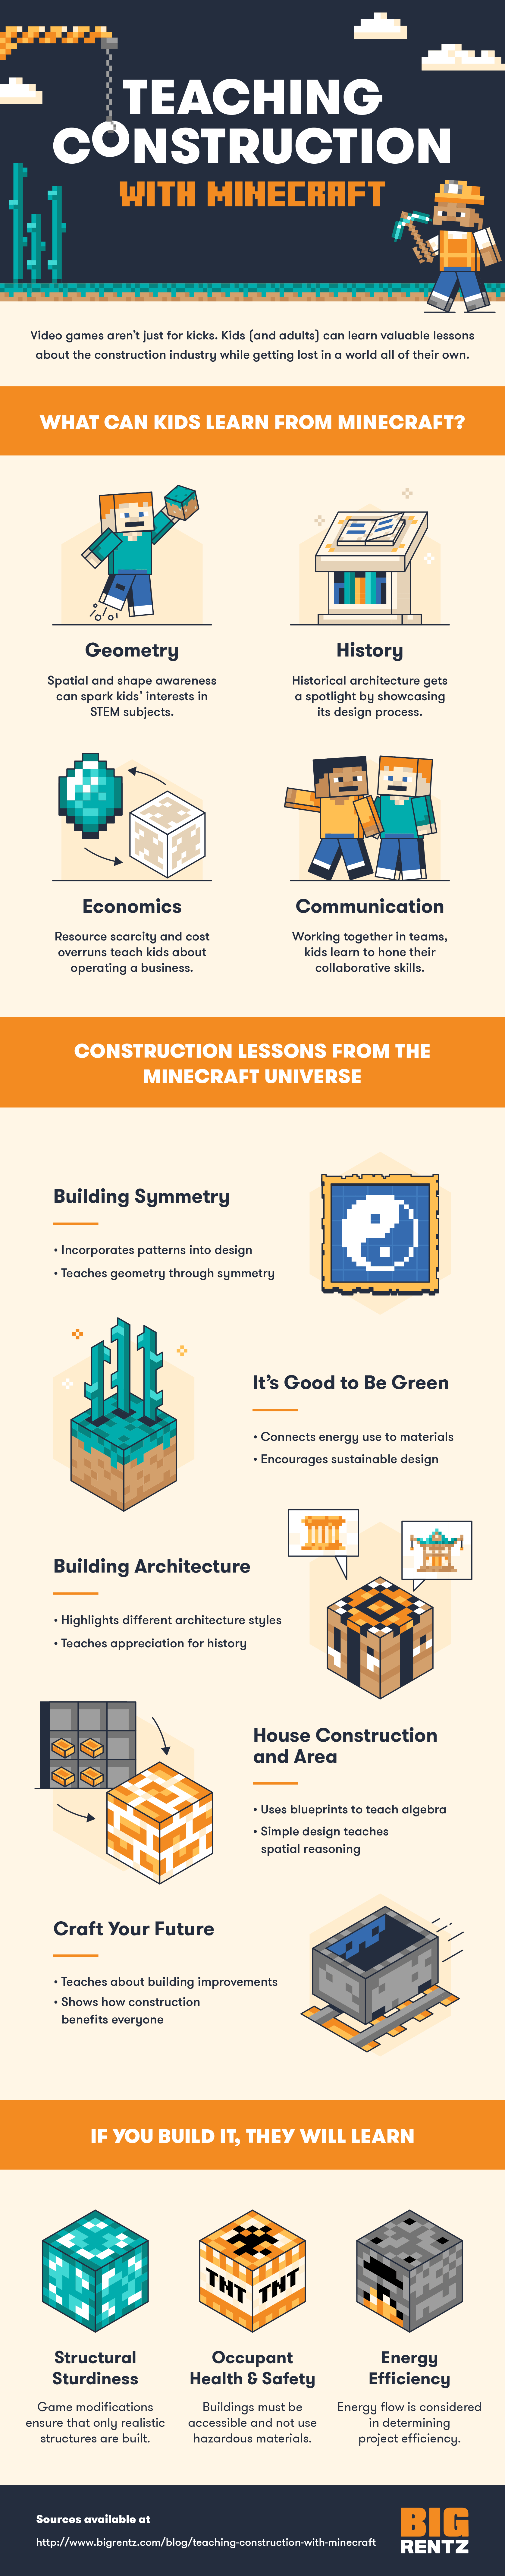 Teaching with Minecraft construction infographic